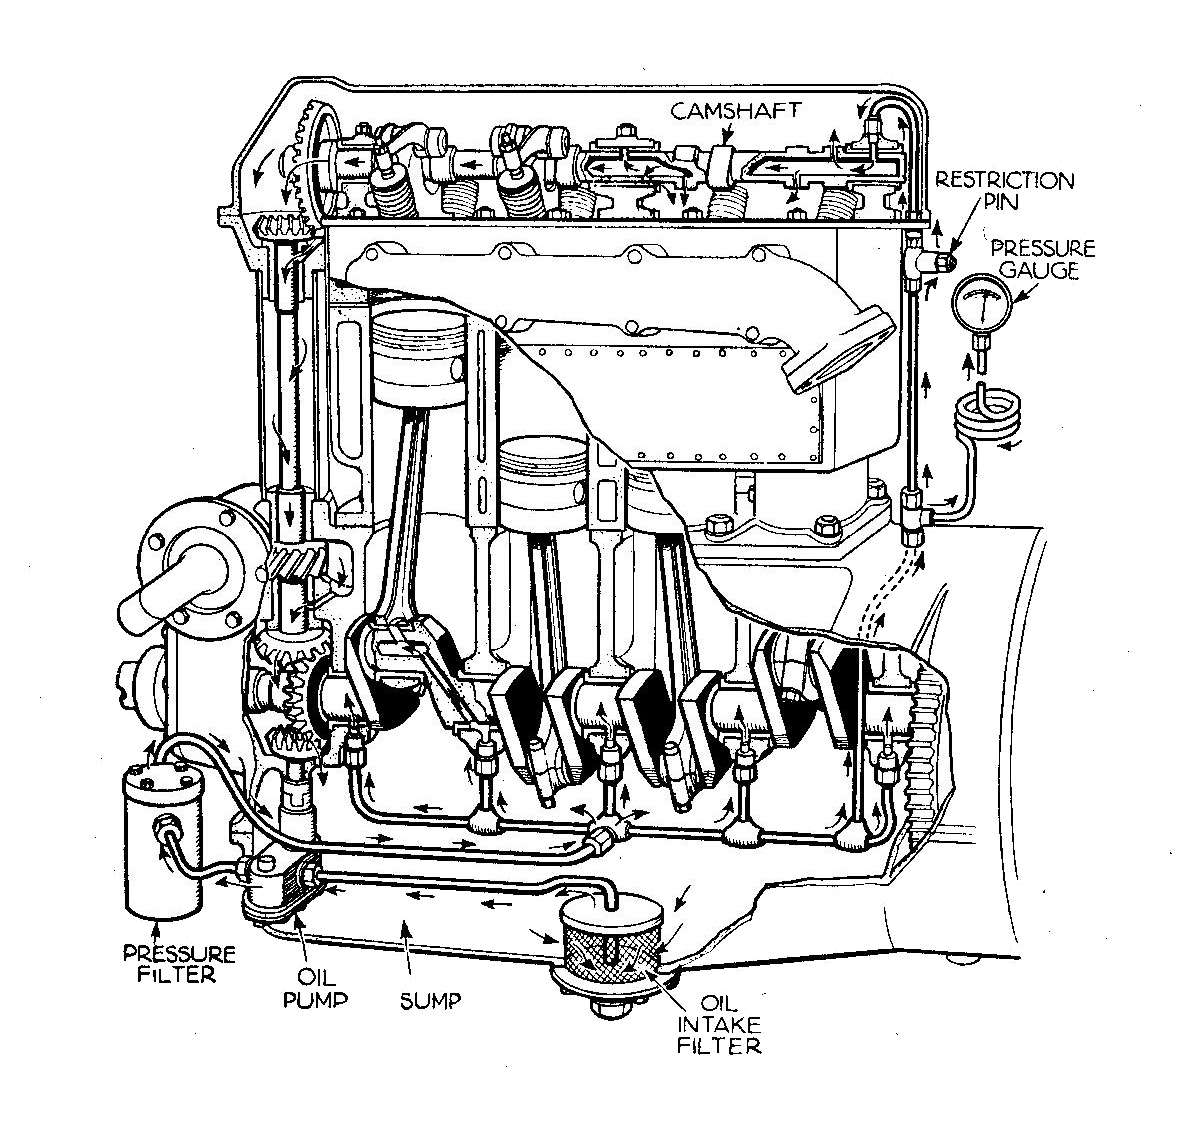 Oil Pump Internal Combustion Engine Wikipedia Nissan Coolant Diagram